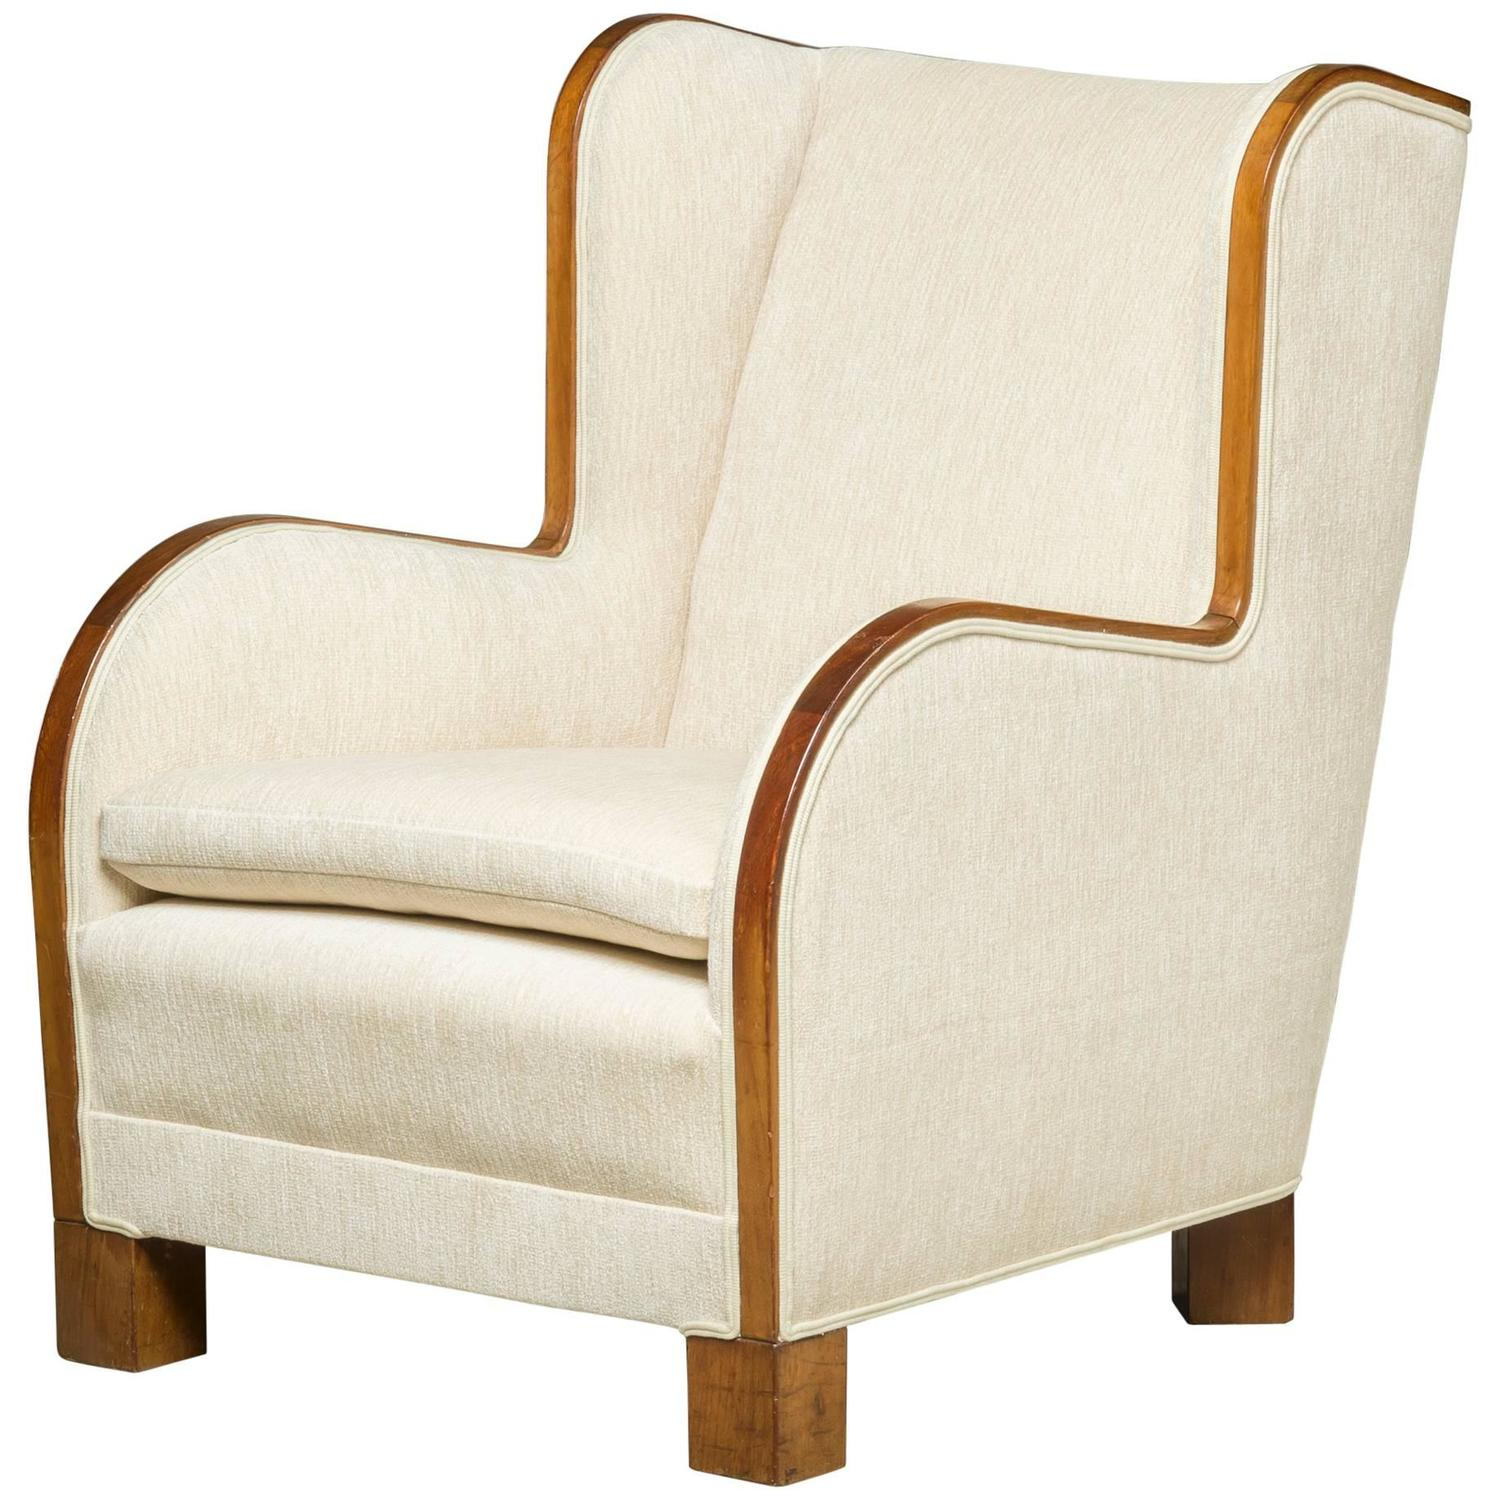 Reupholstered high back 39 easy chair 39 danish design for for Reupholstered chairs for sale